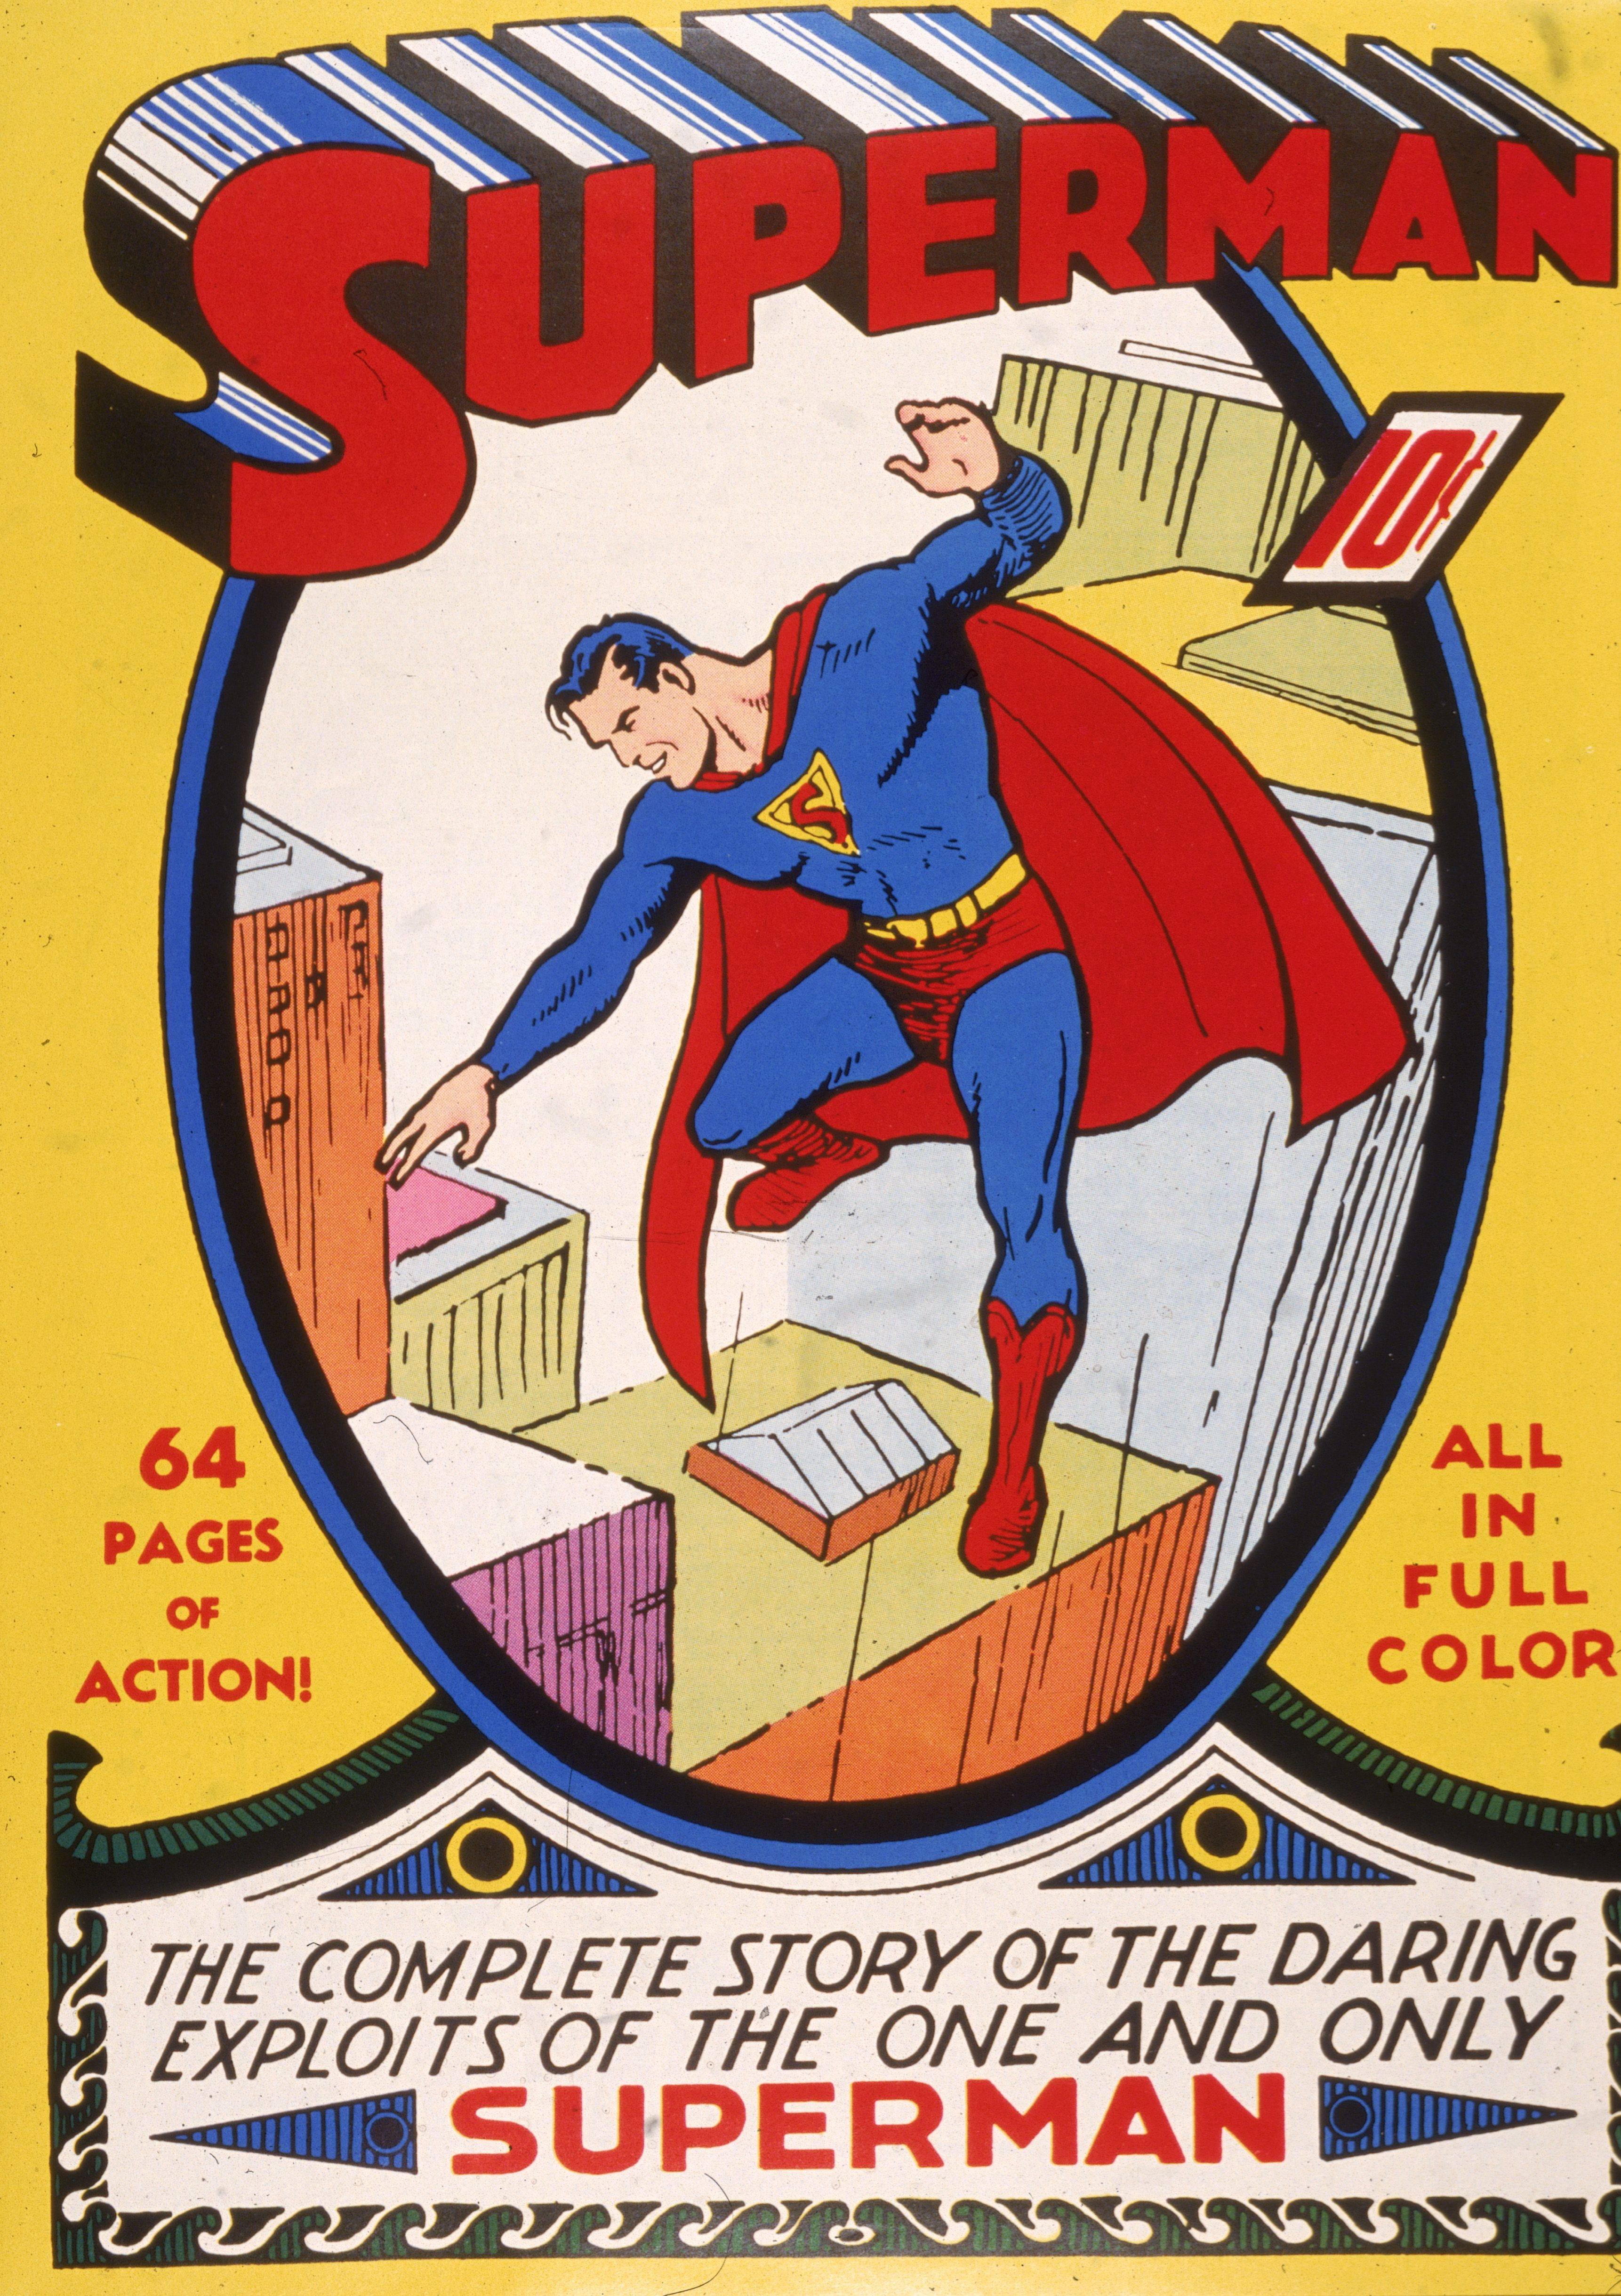 Vintage Comic Book Cover Art : Top comic book covers cover art for the 'superman